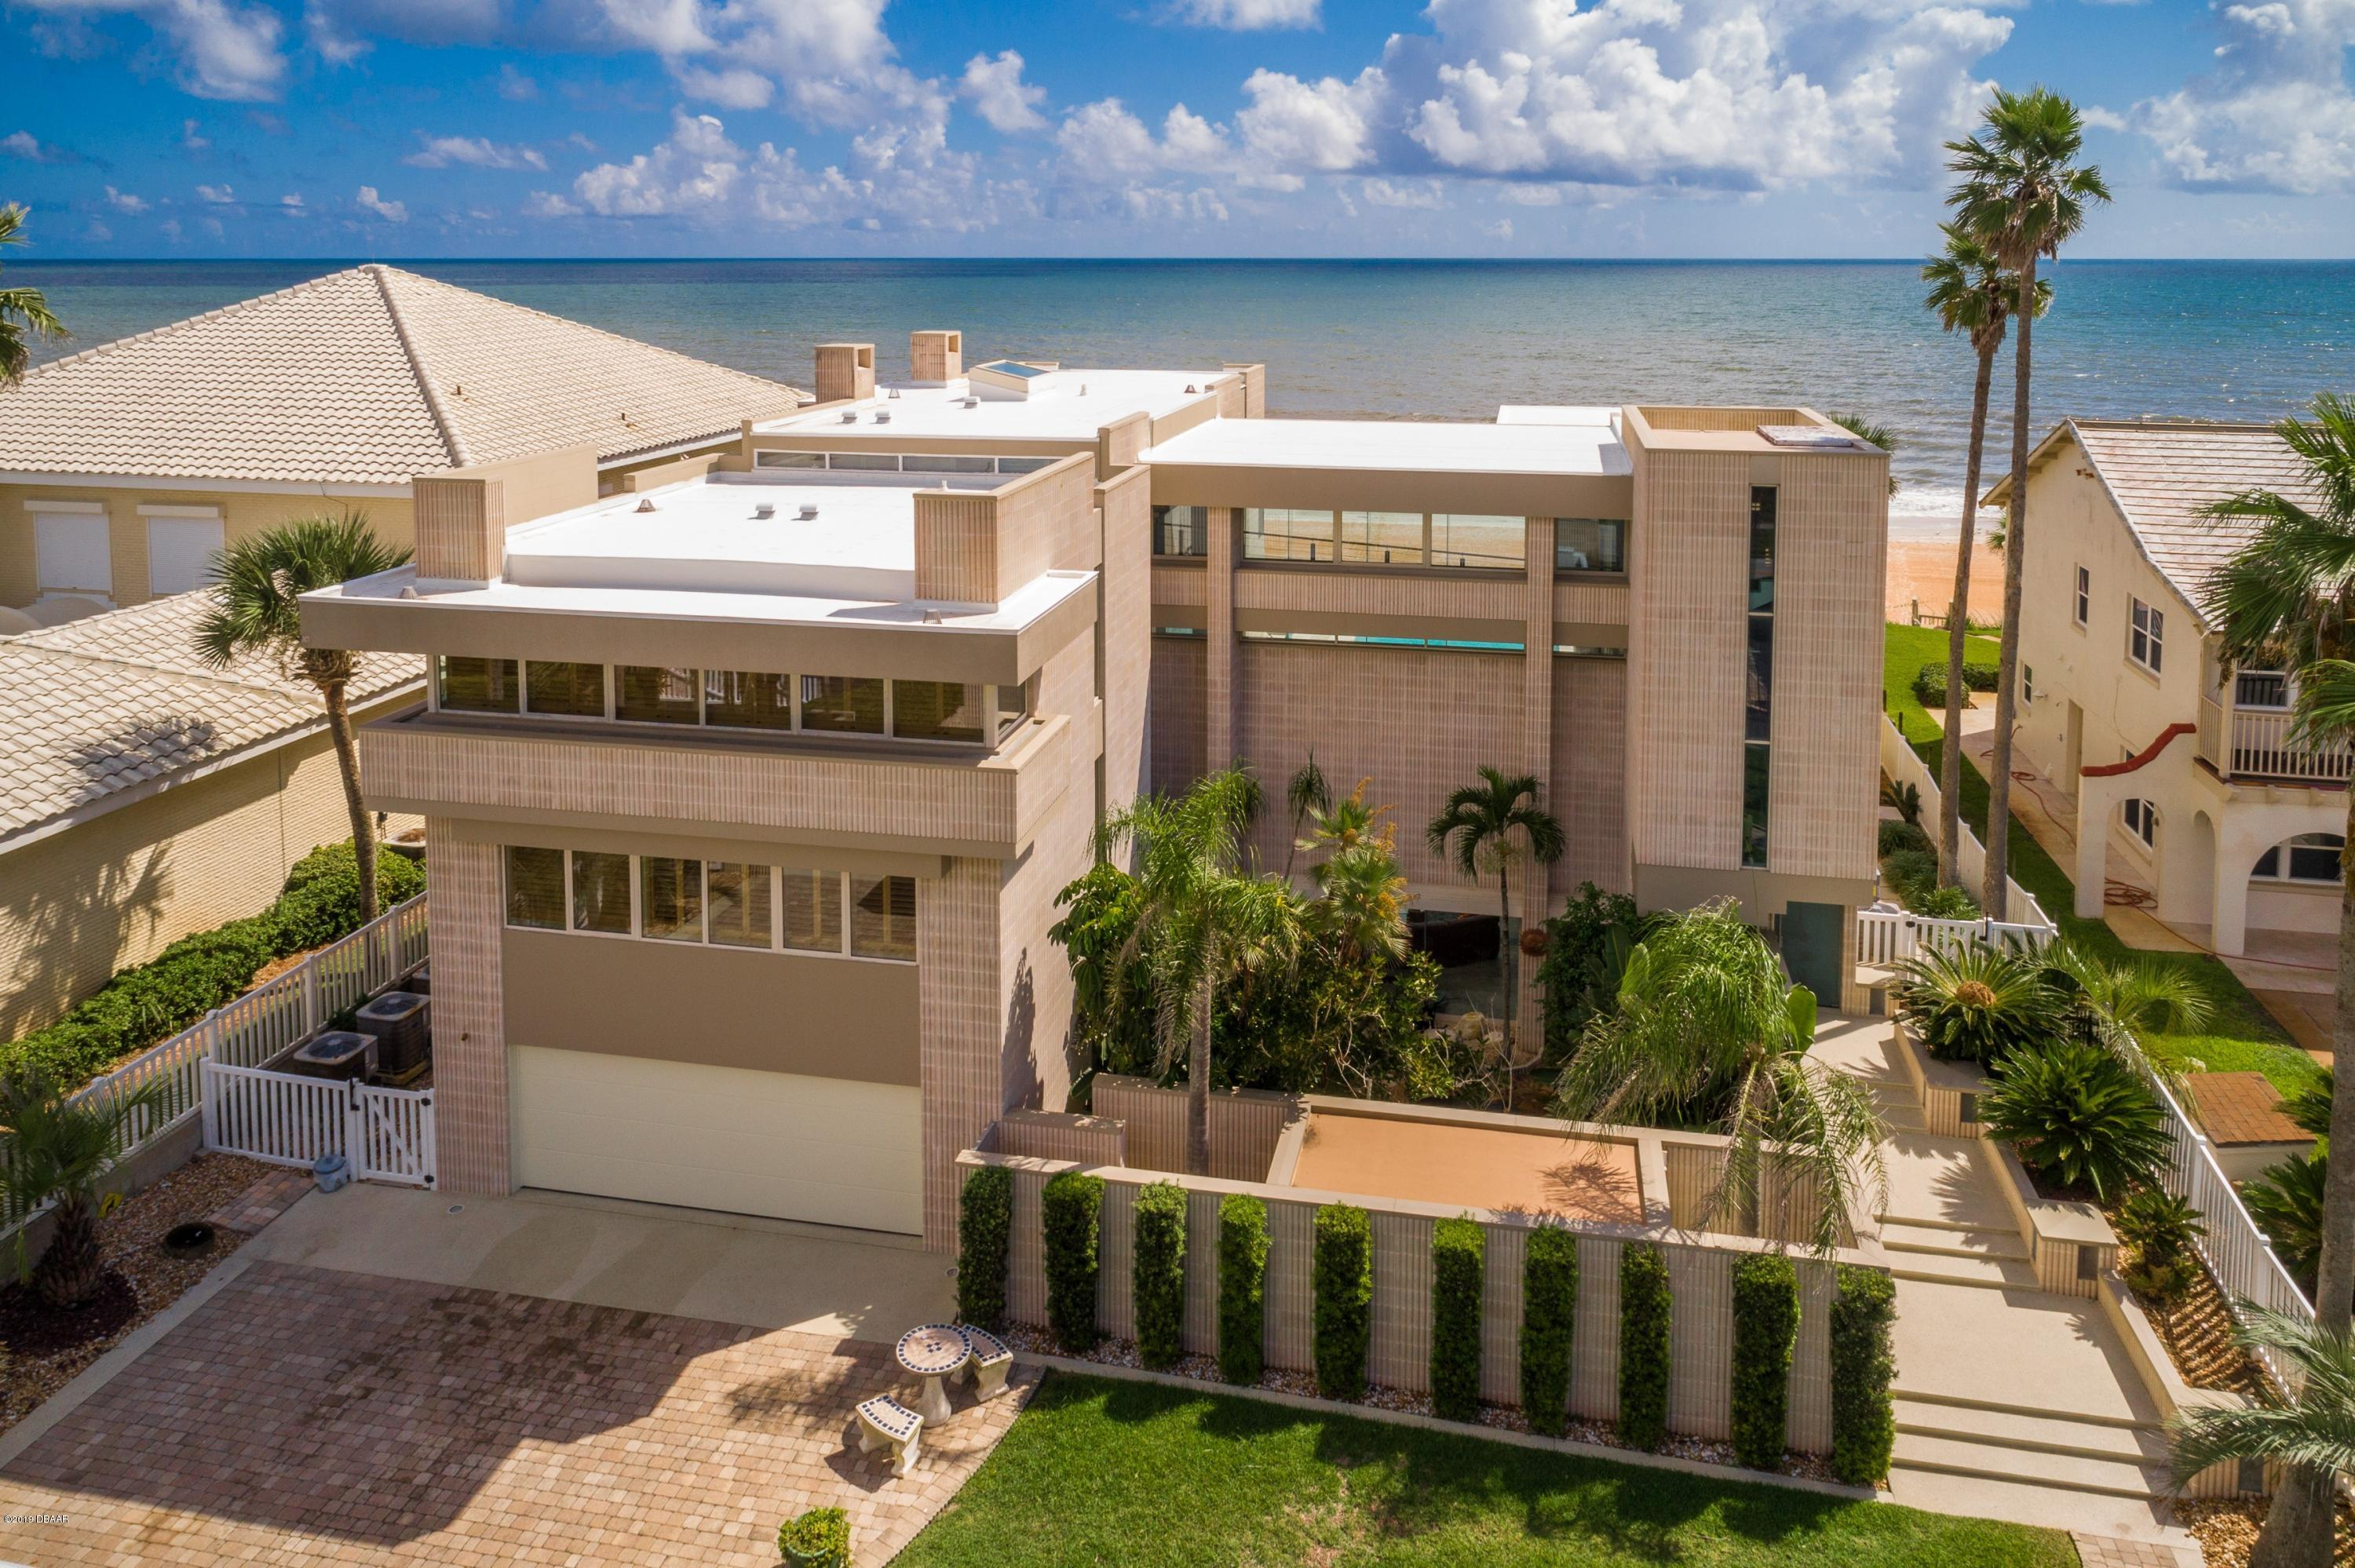 Photo of 489 Ocean Shore Boulevard, Ormond Beach, FL 32176